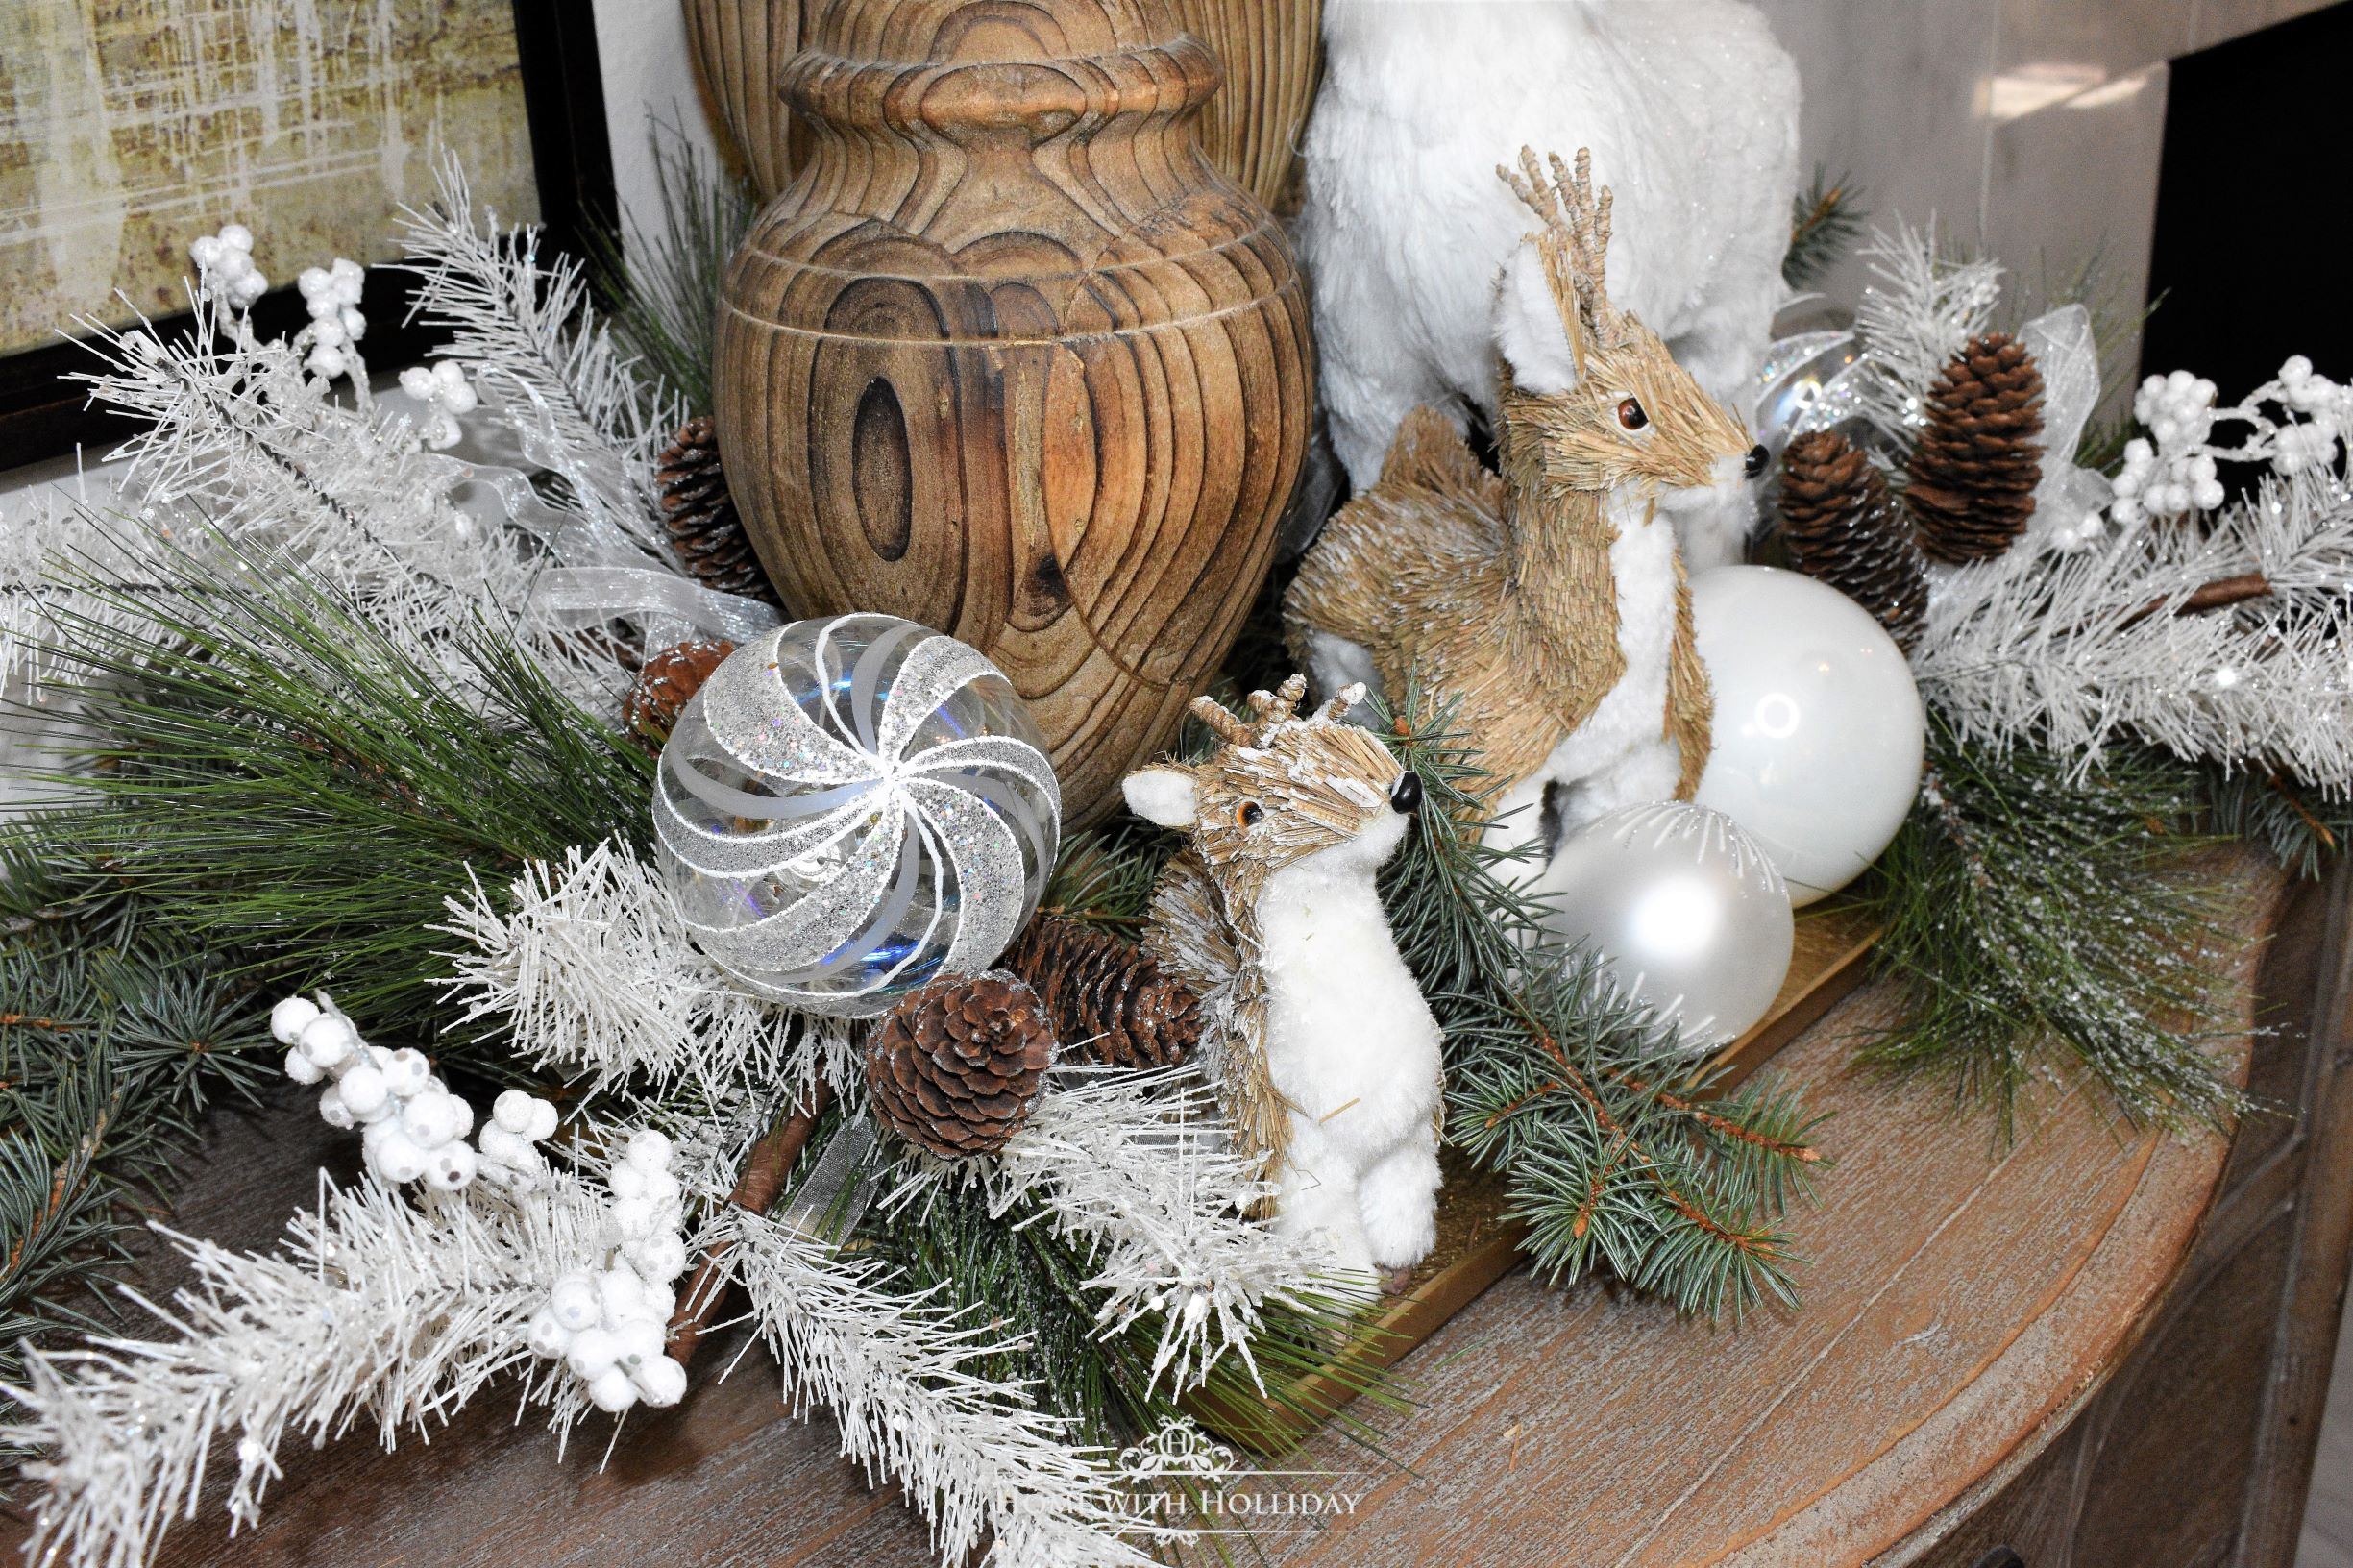 Decorating a Tray for Christmas 6 Ways - Winter White Deer - Home with Holliday